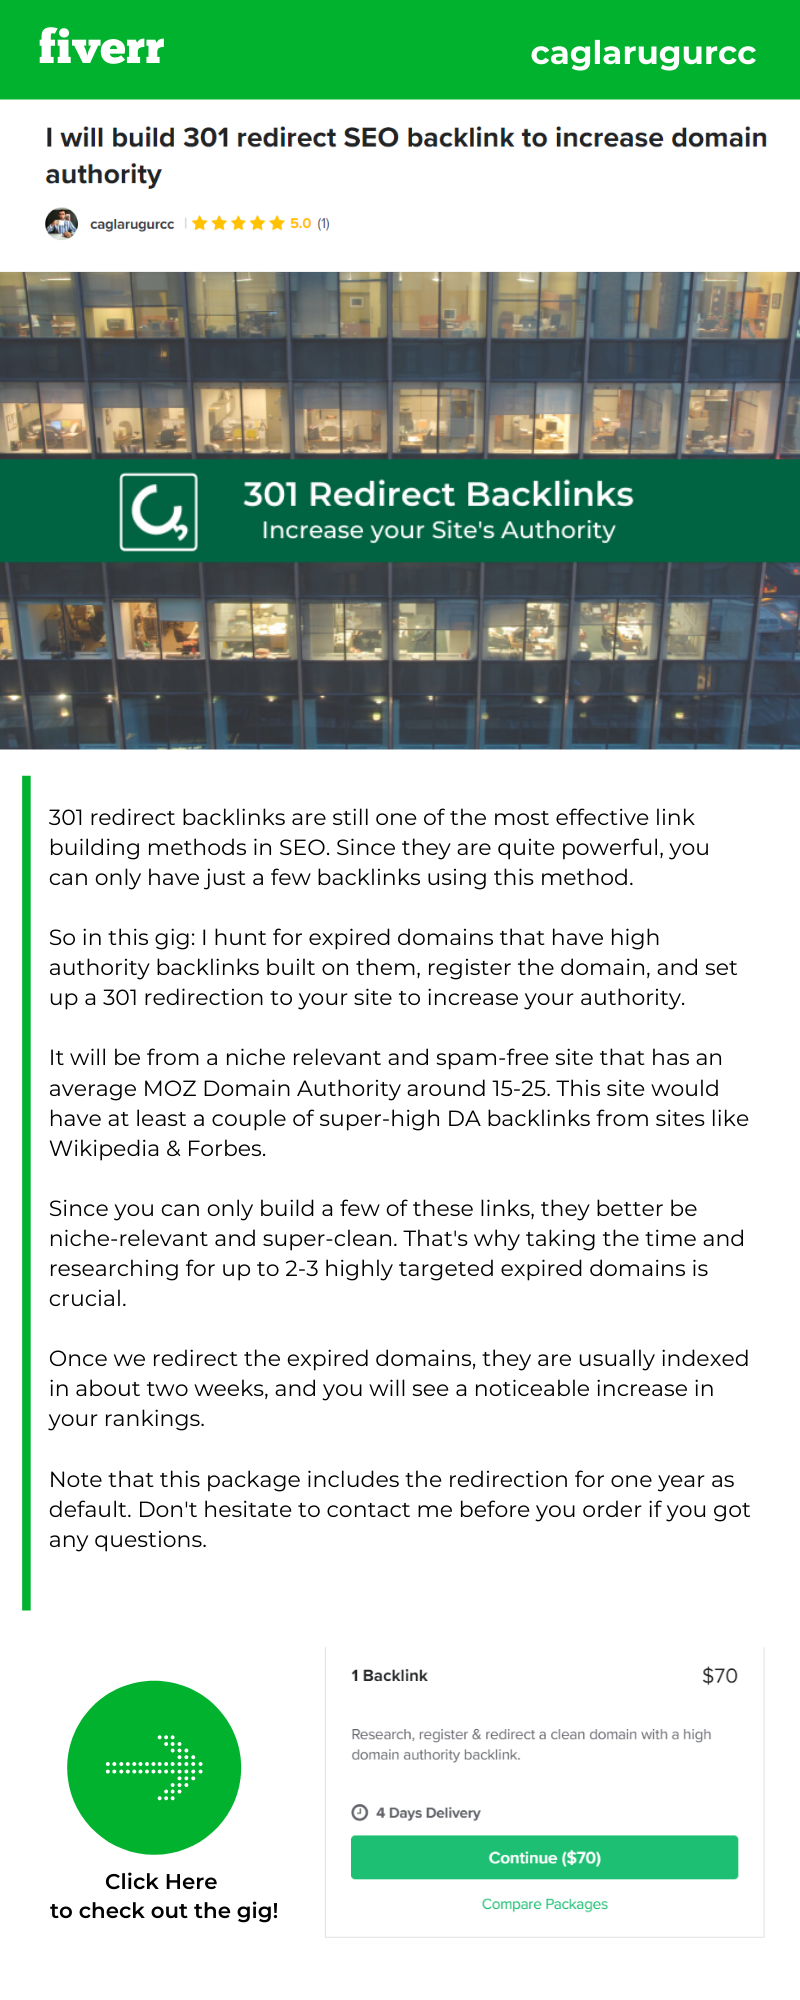 I will build 301 redirect SEO backlink to increase domain authority